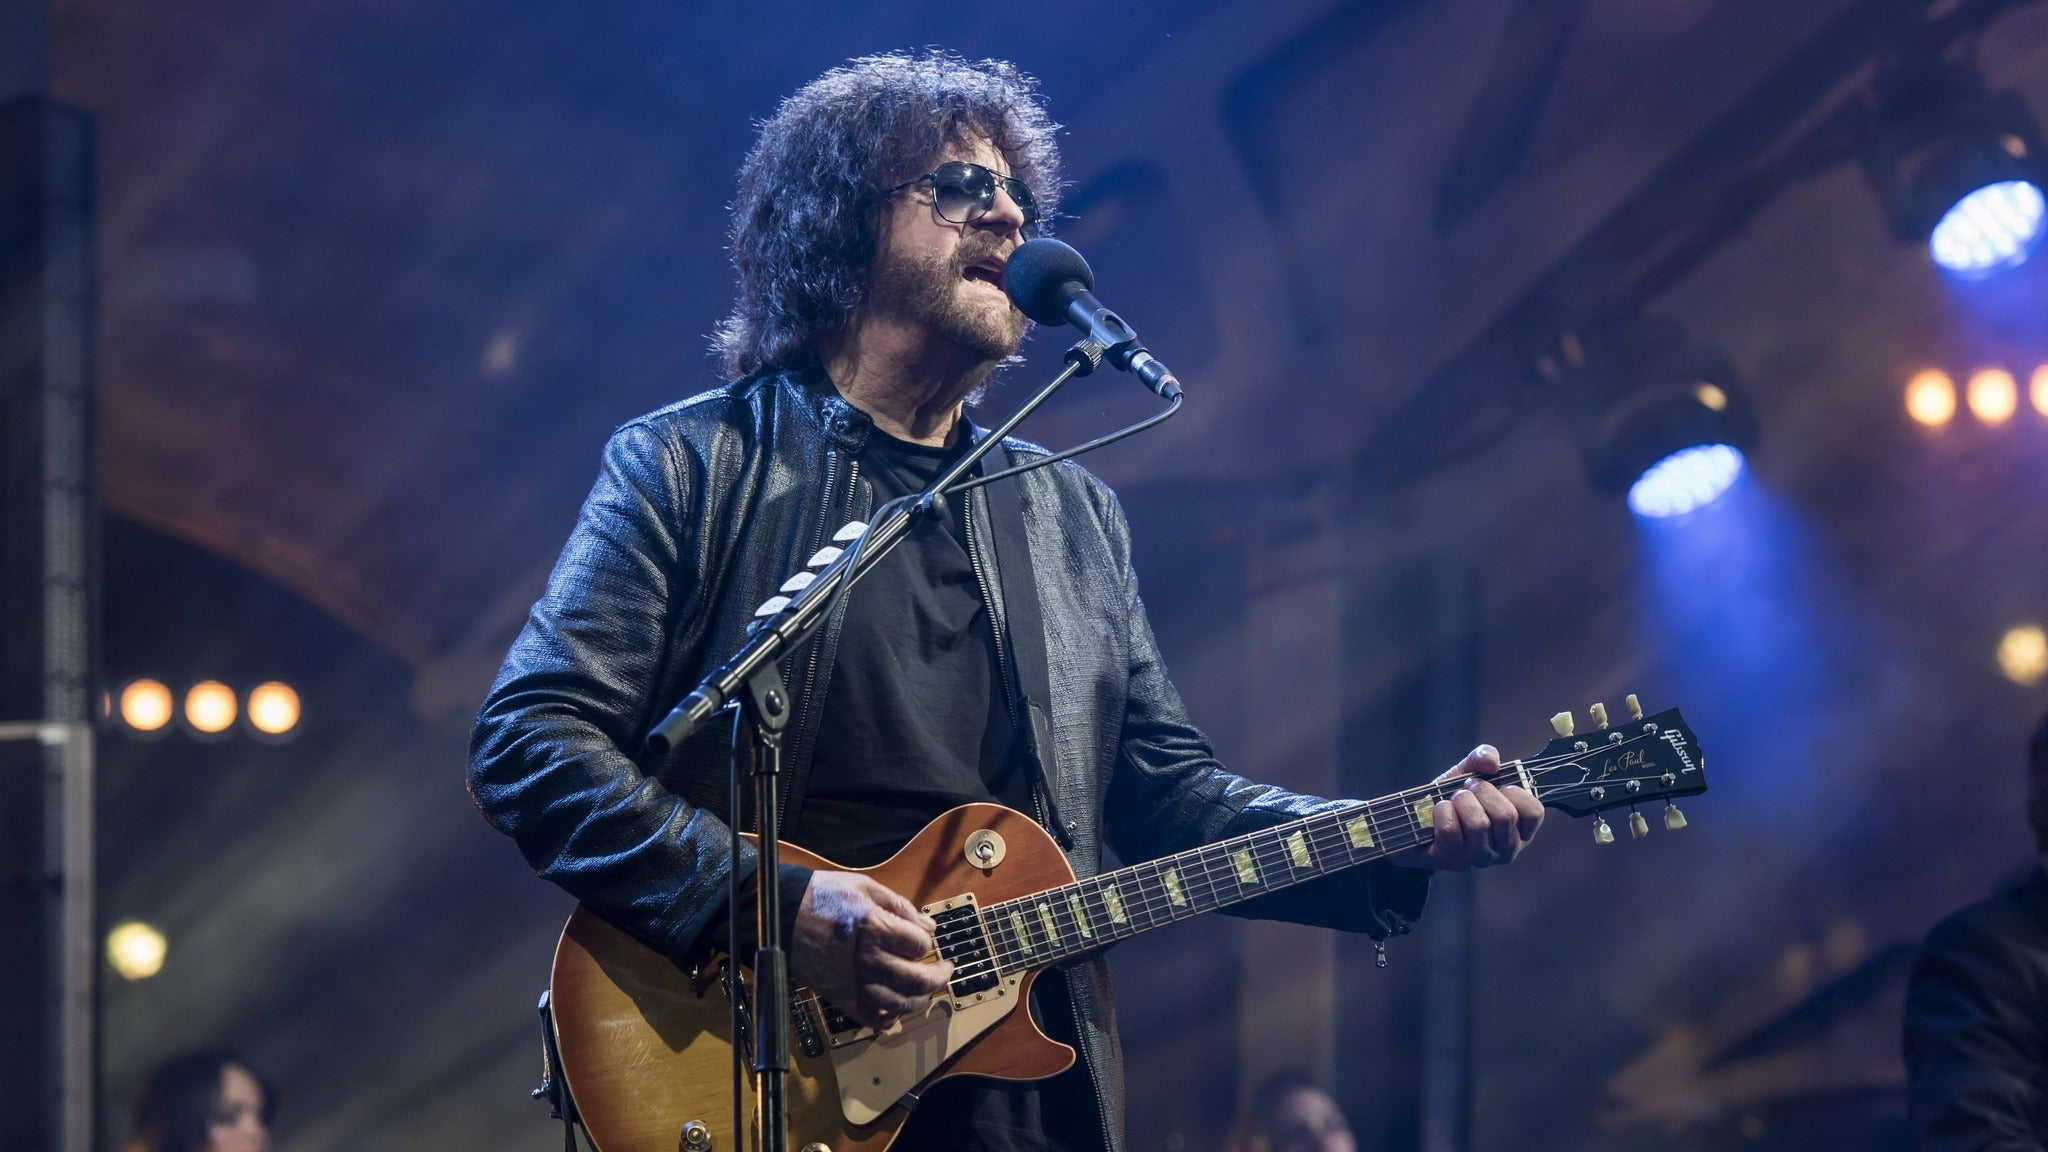 Jeff Lynne's ELO at The Forum